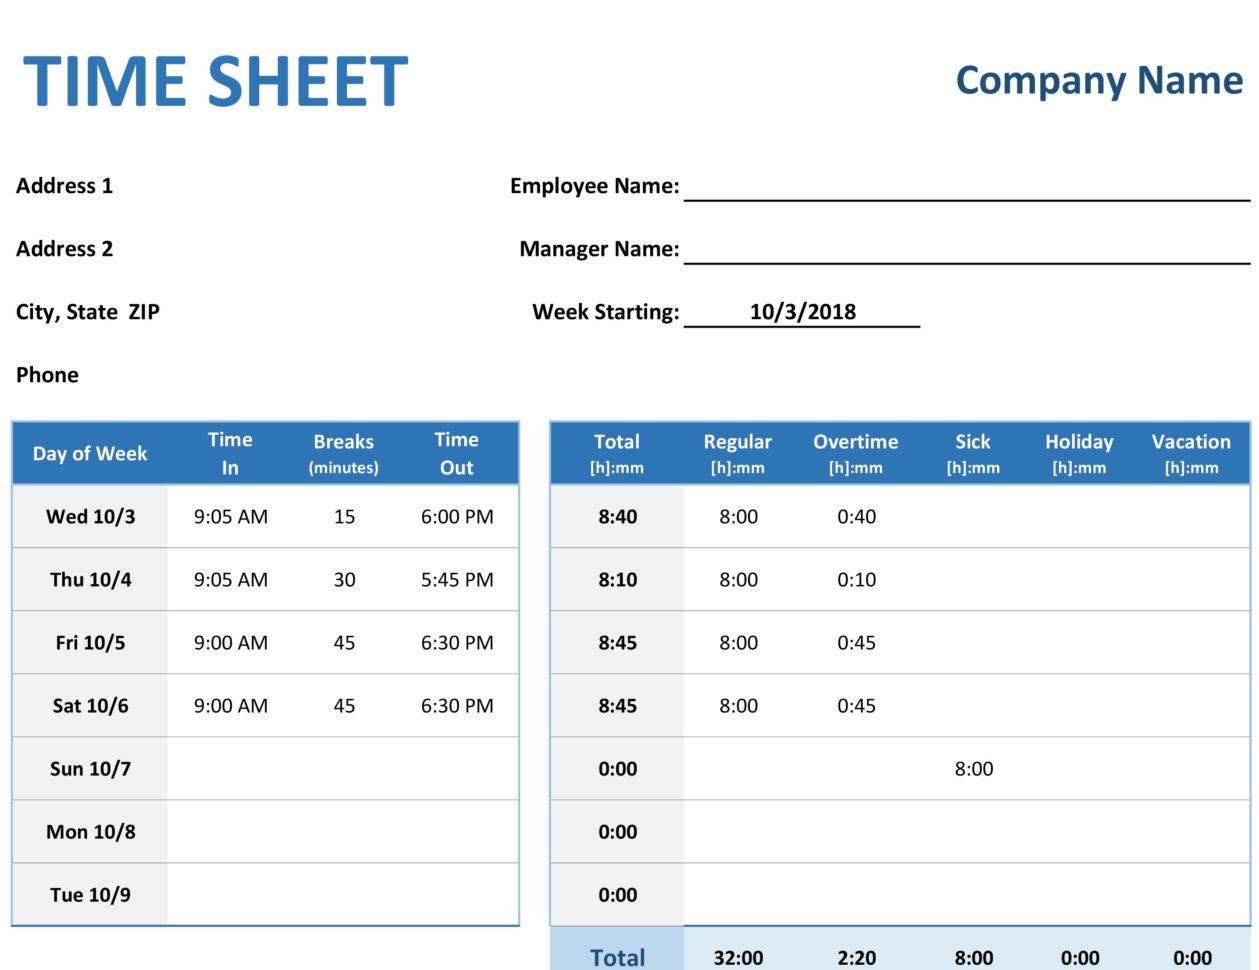 Time Sheet Intended For Employee Hours Spreadsheet